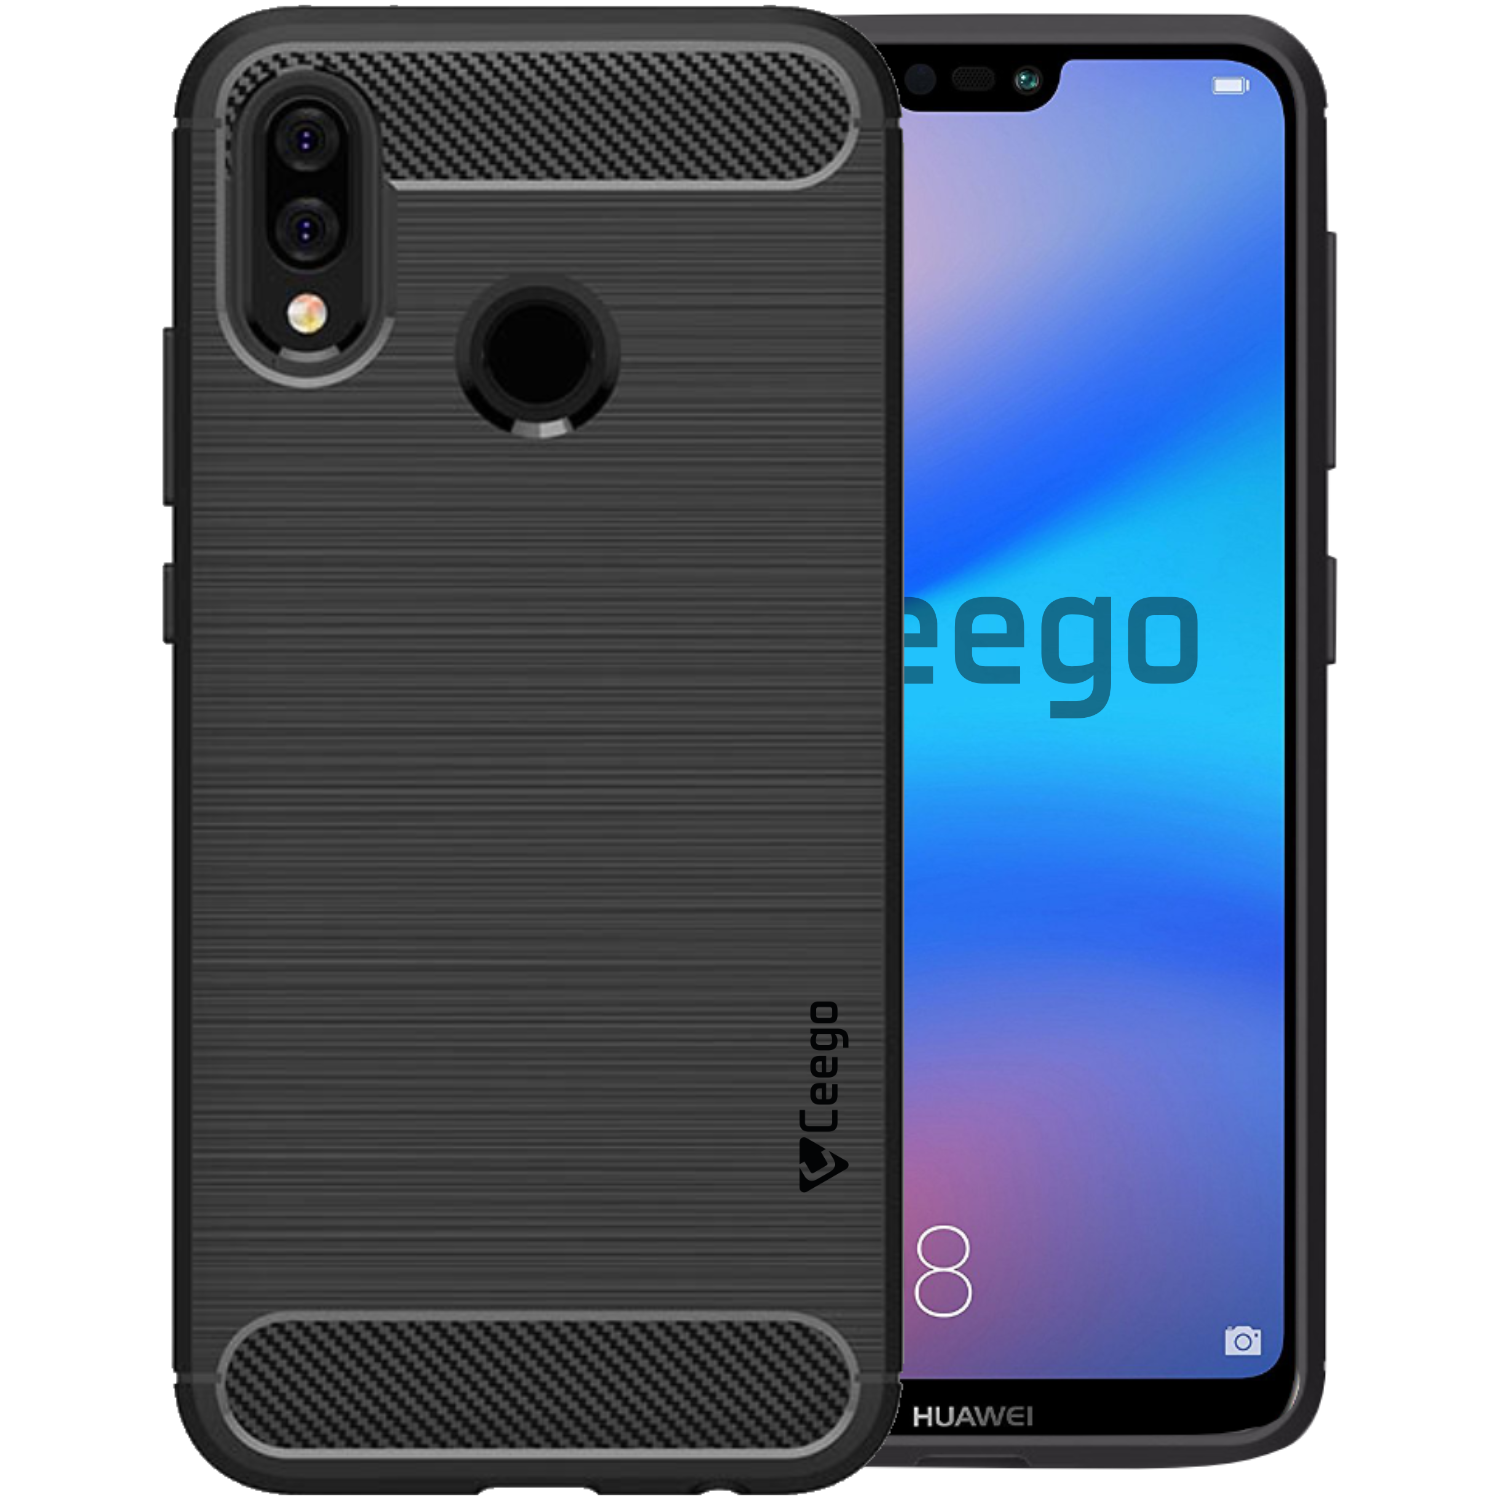 Ceego Carbon Fiber Shield Back Case for Huawei P20 lite  – Matte Black